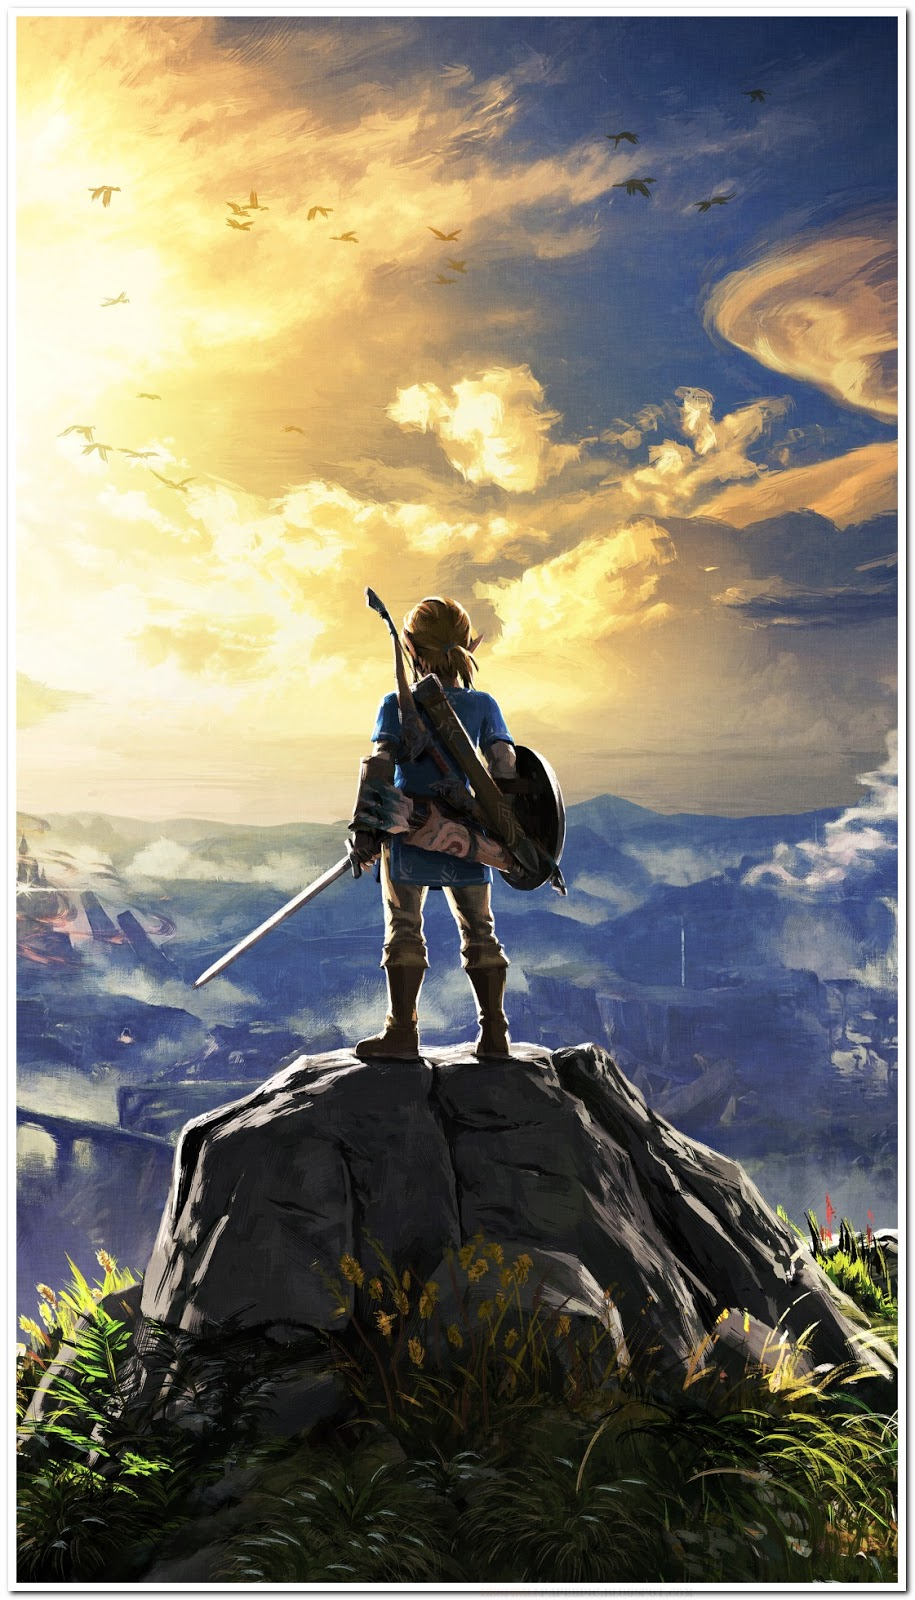 The Legend Of Zelda Breath On The Wild Wallpaper Zelda Breath Of The Wild 2 915x1600 Download Hd Wallpaper Wallpapertip